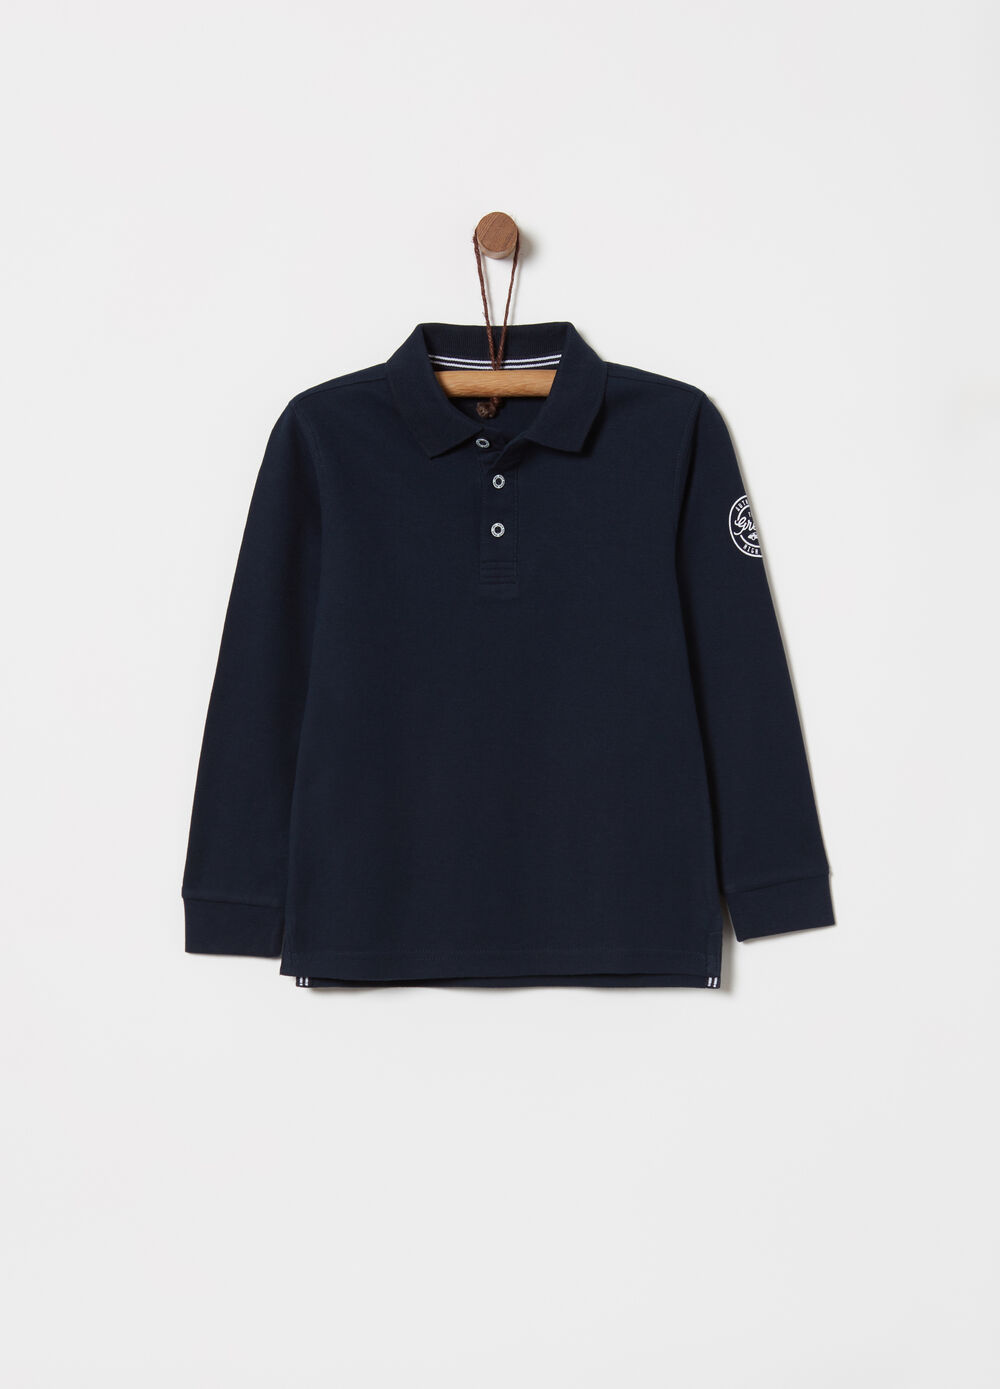 Polo shirt in cotton piquet with printed details